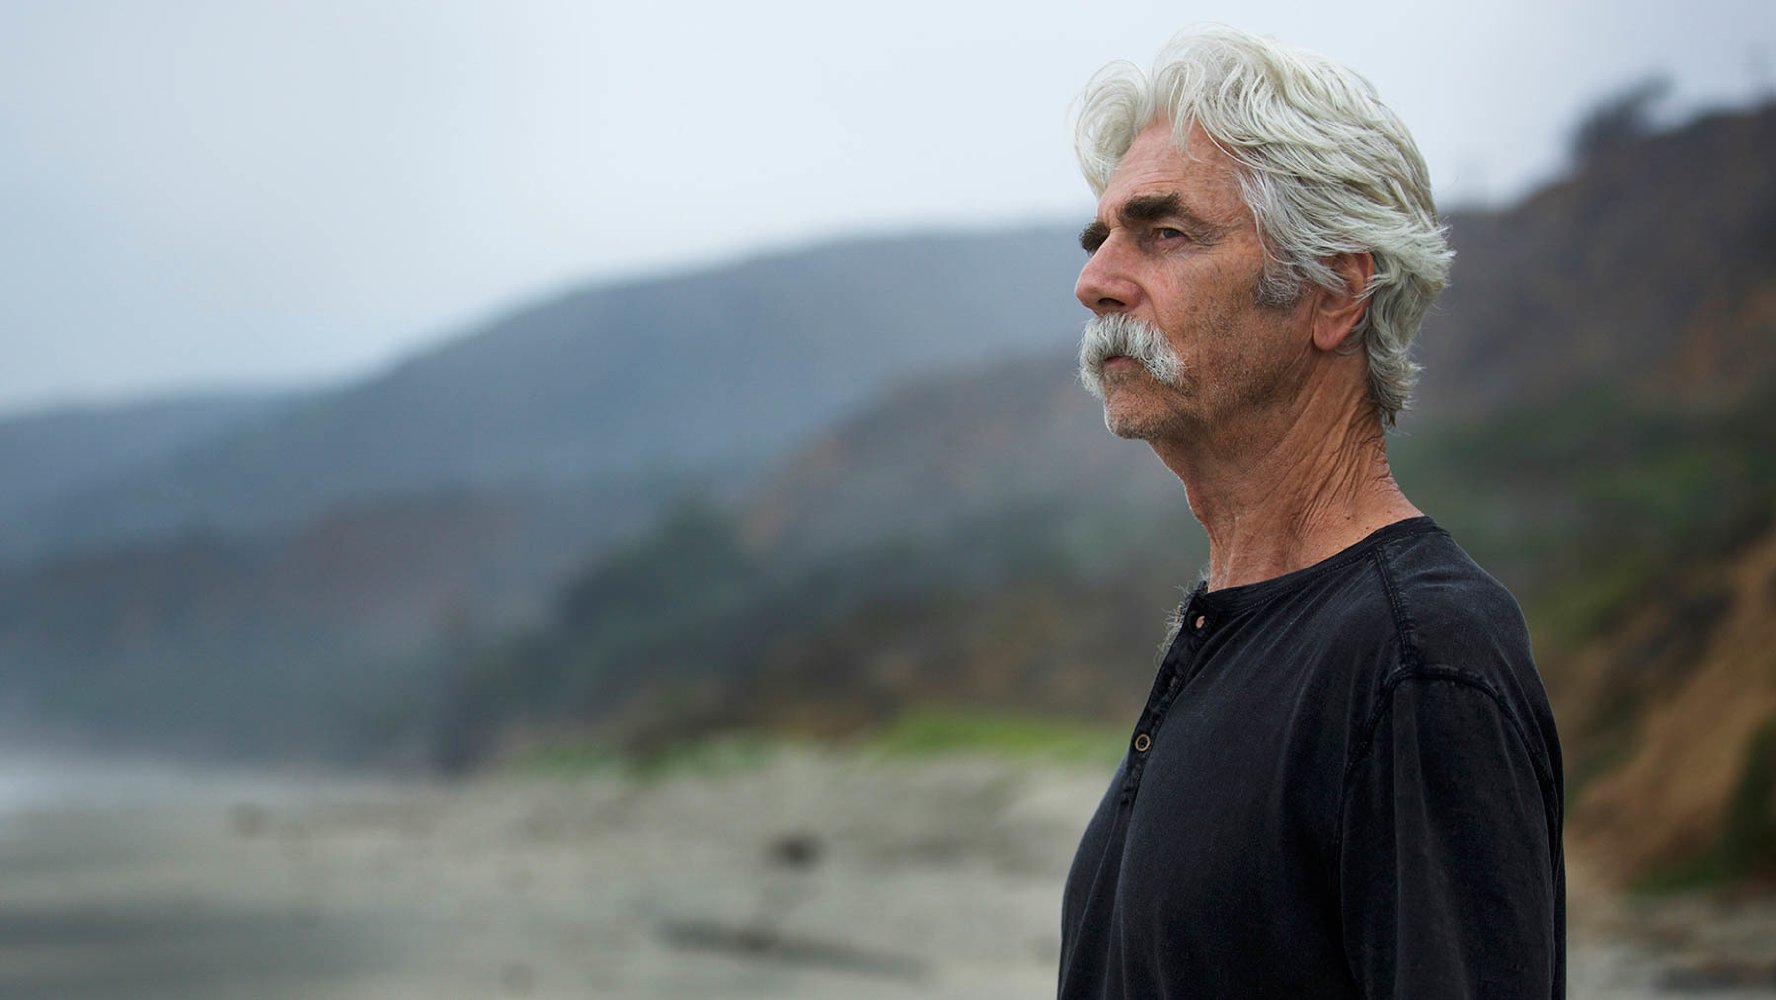 'The Hero' gives Sam Elliott a late-career opportunity to shine